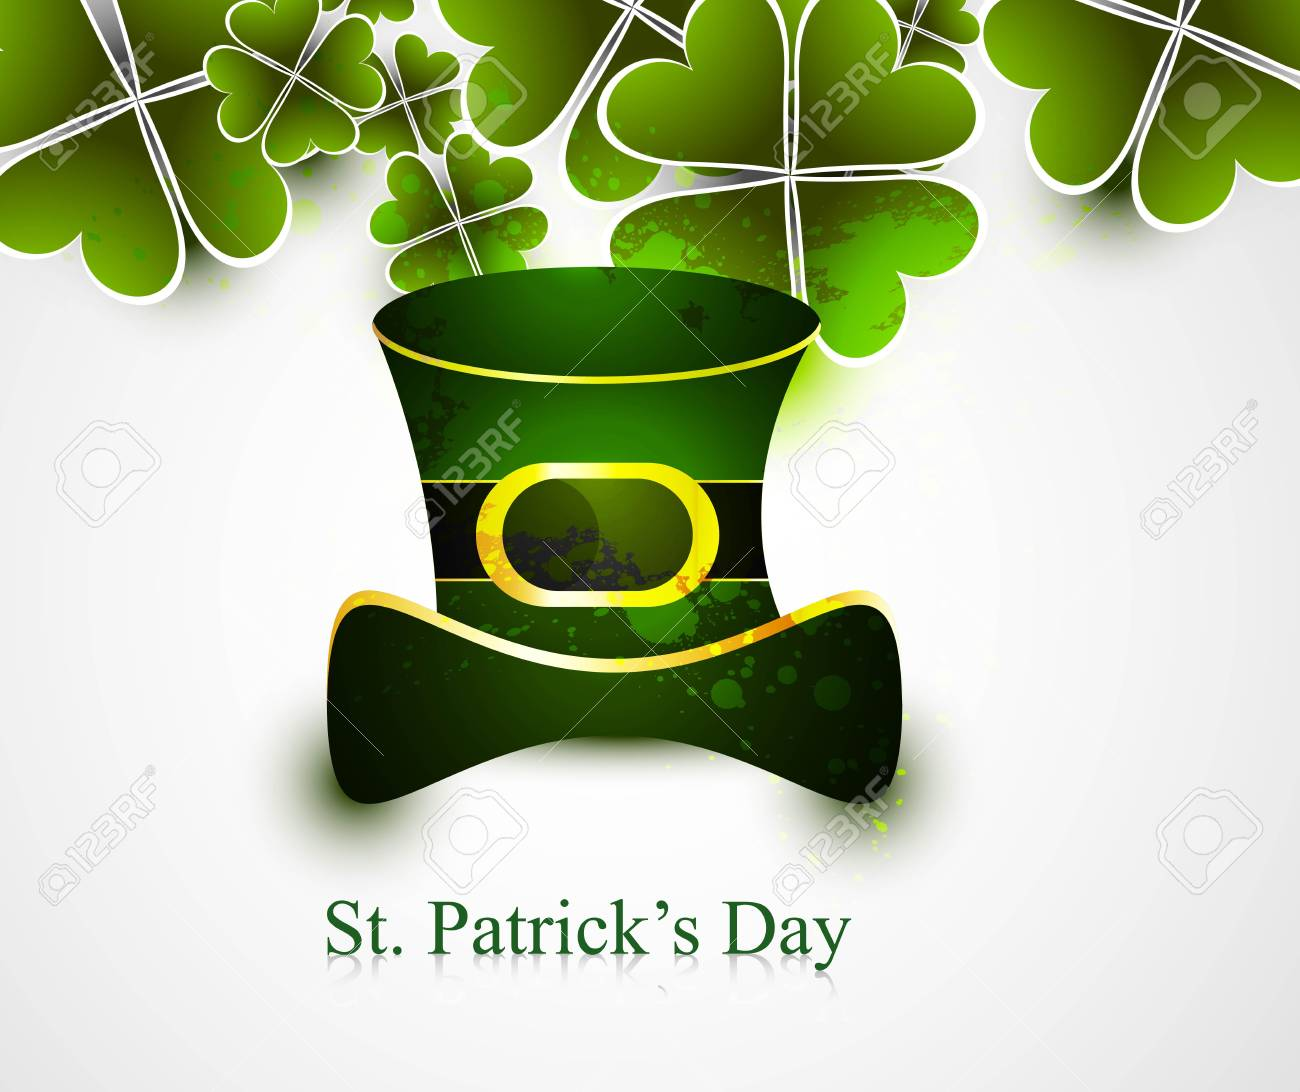 st patrick's day illustration with hat vector Stock Vector - 19260212